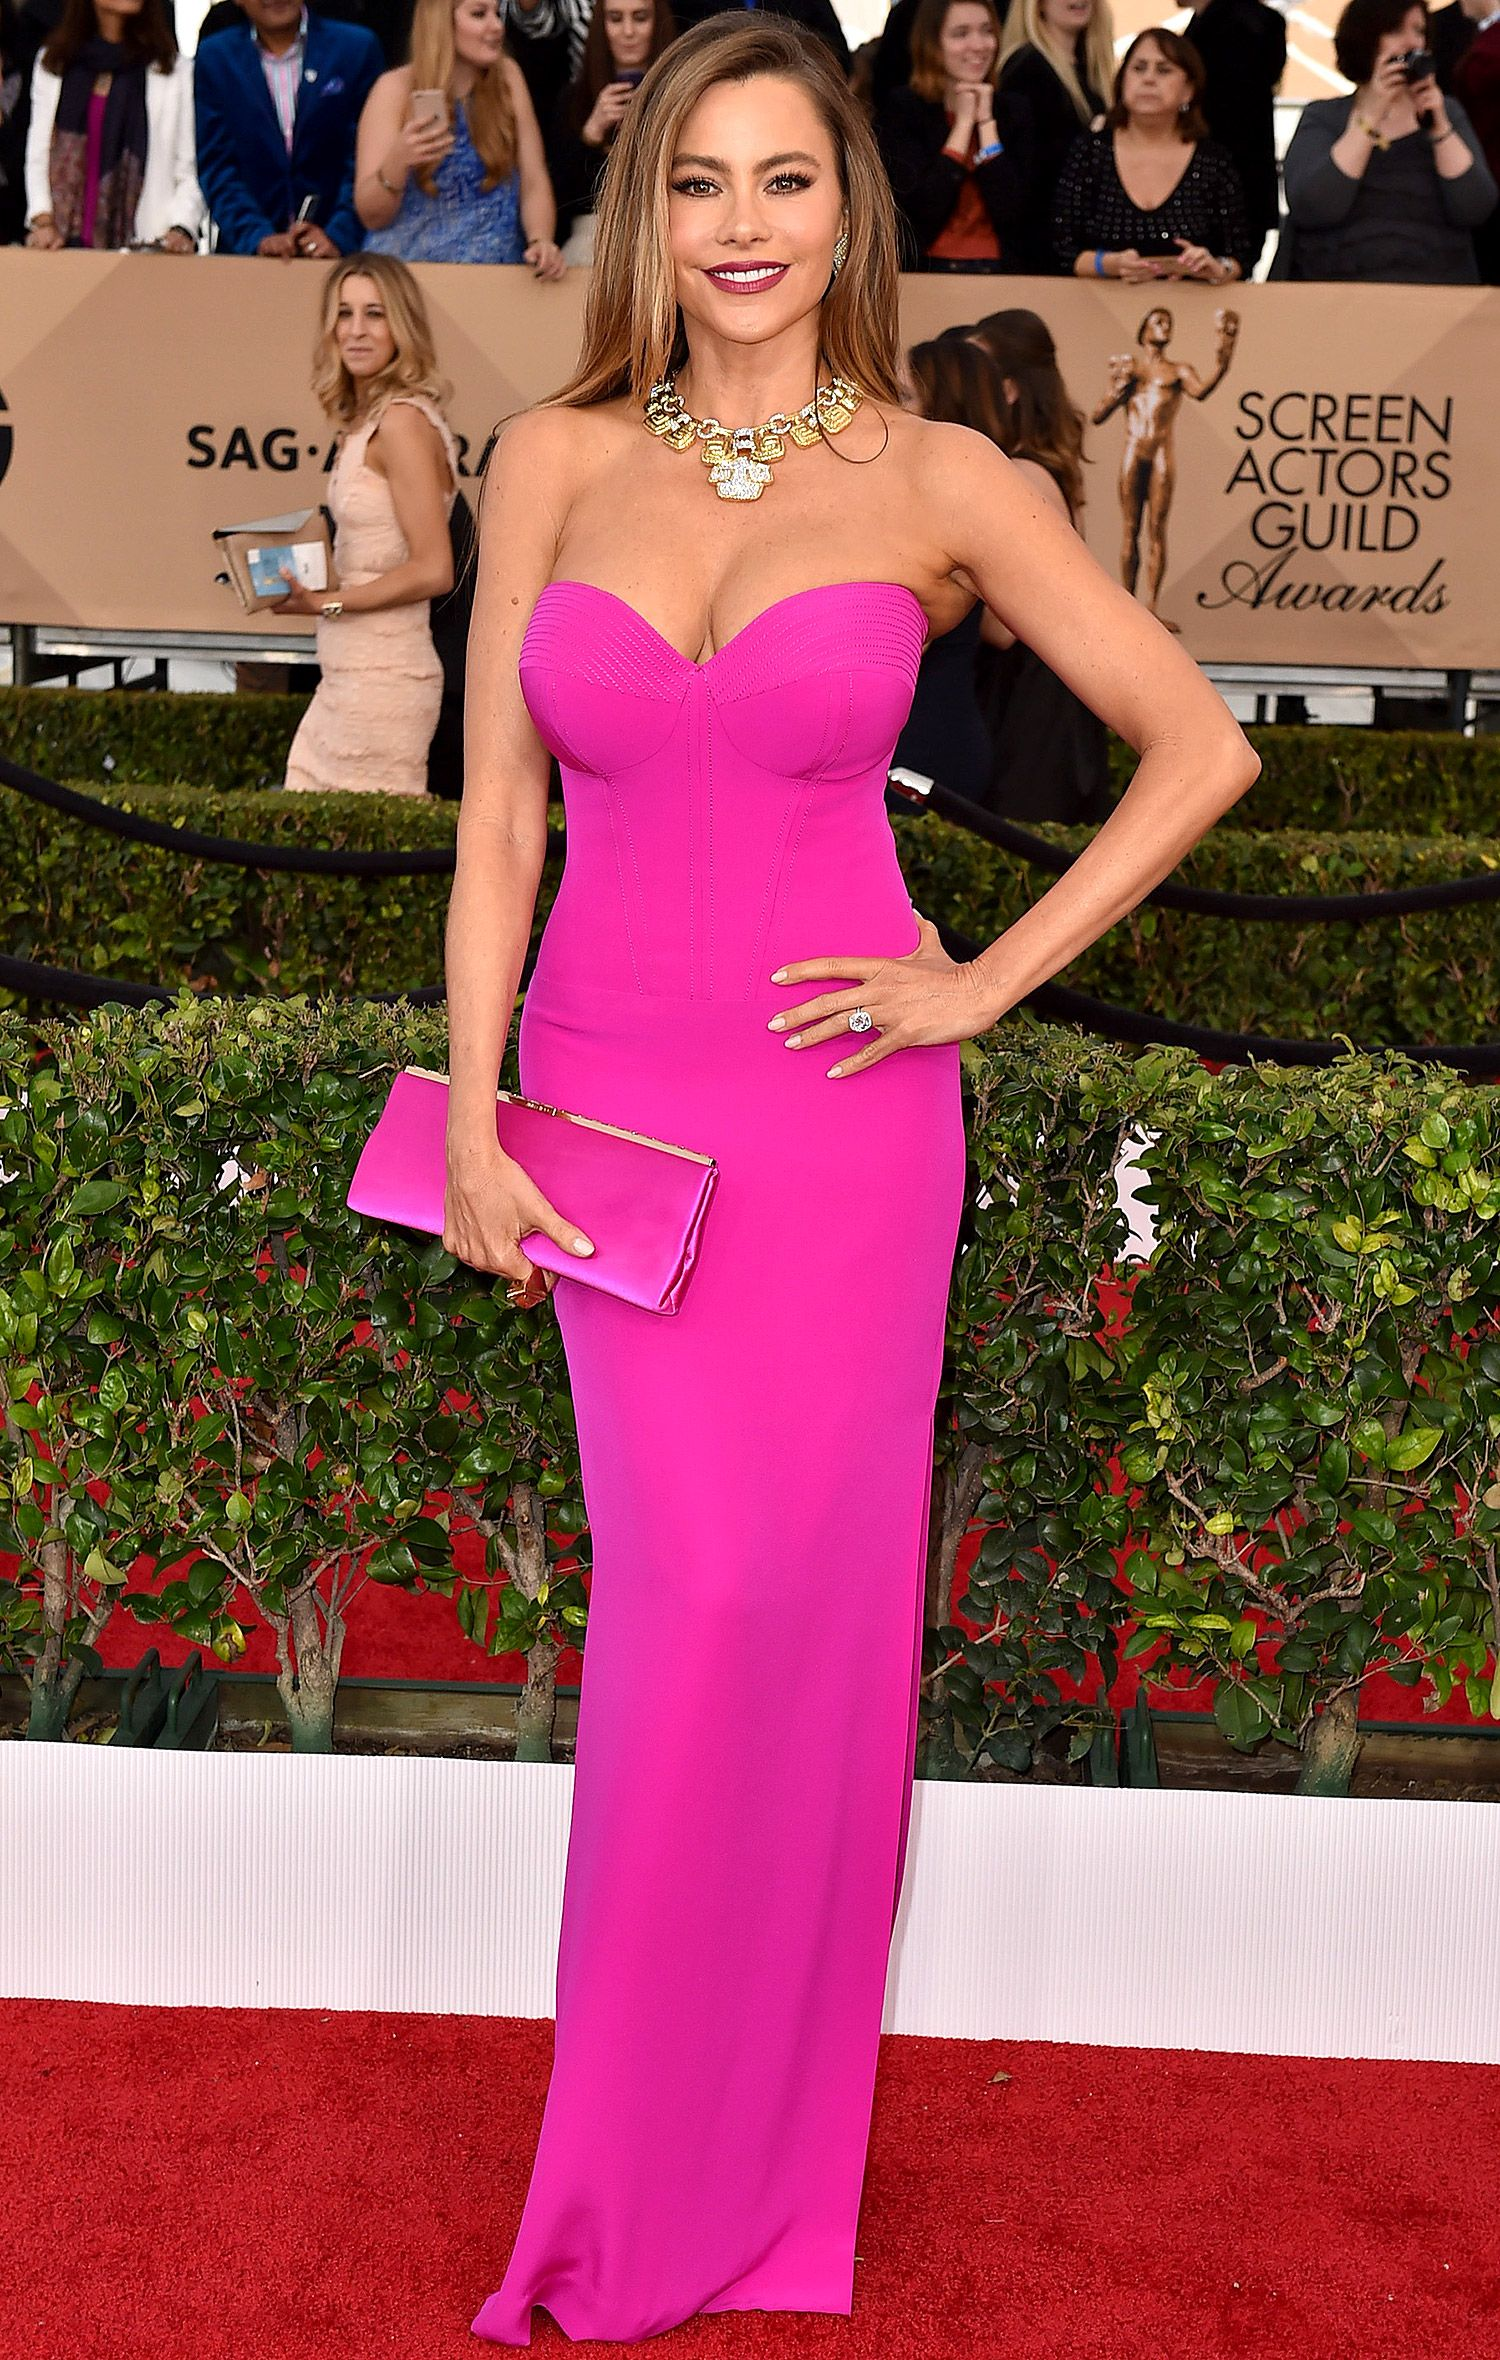 SAG Awards 2016: The Biggest Risk Takers on the Red Carpet ...